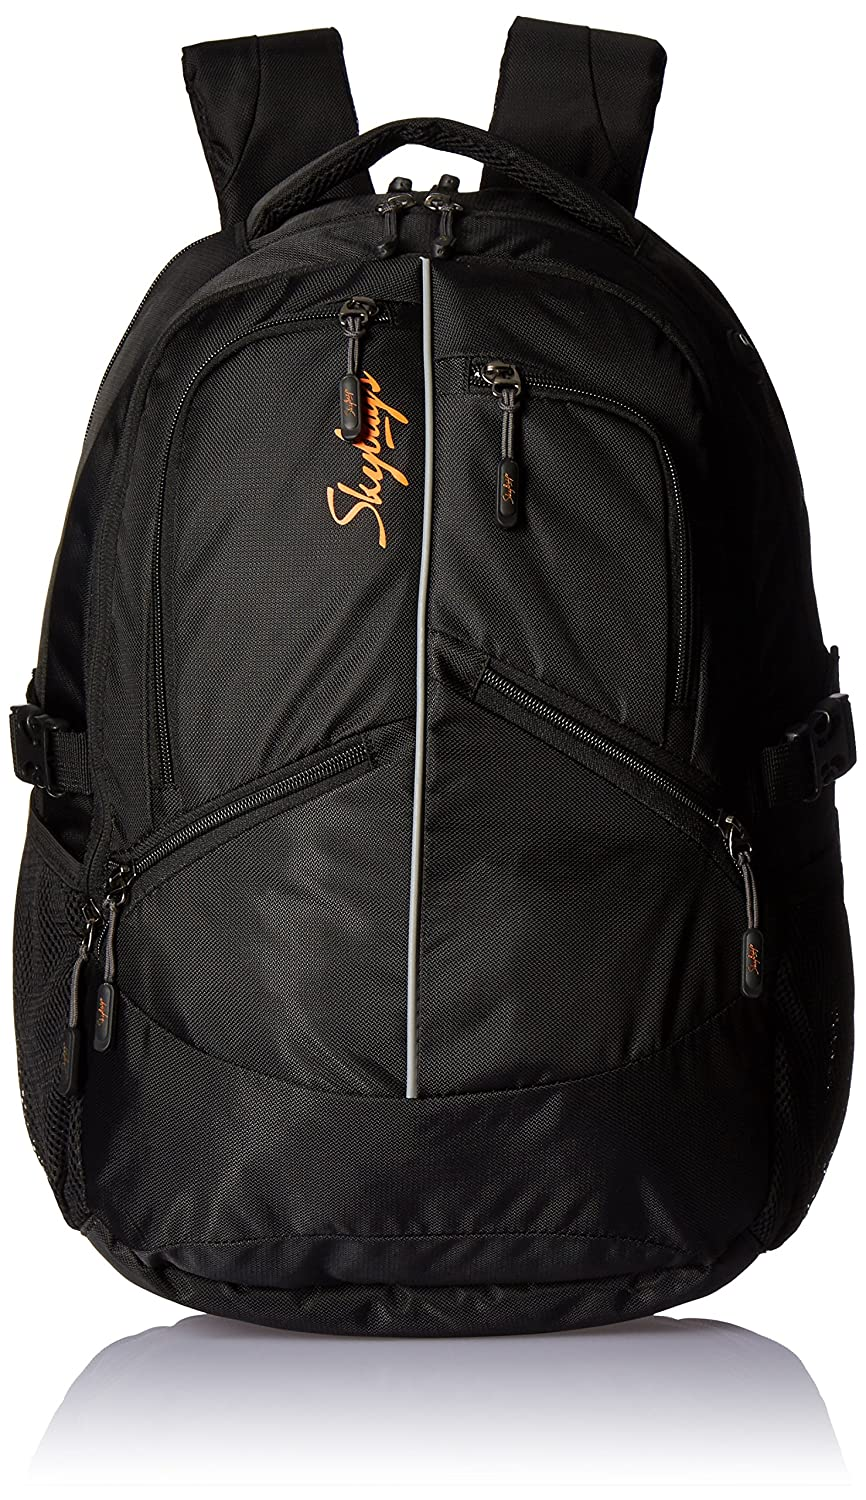 Skybags Crew Nylon 0.326 ltrs Black Laptop Bag (CREW02BLK)  Amazon.in  Bags 681f62828f684